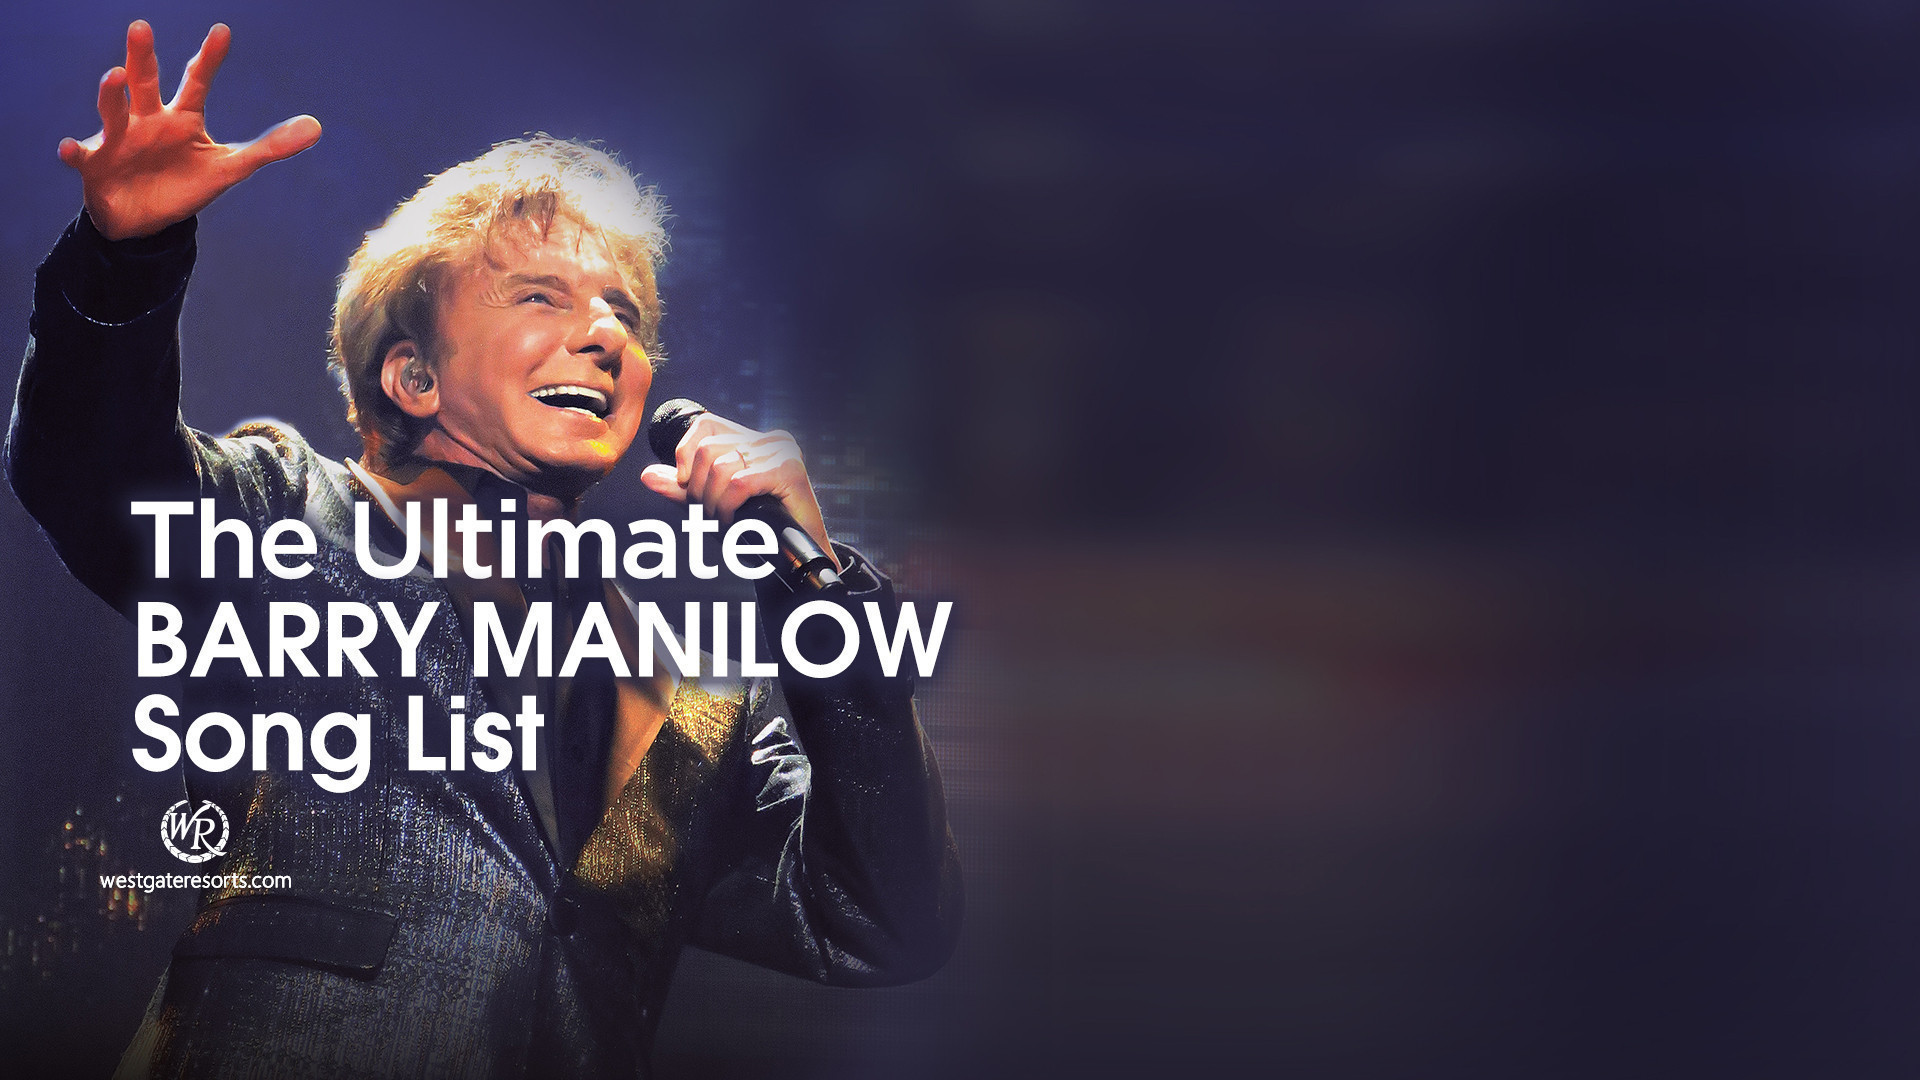 The Ultimate Barry Manilow Song List | Barry Manilow Songs | Westgate Resorts